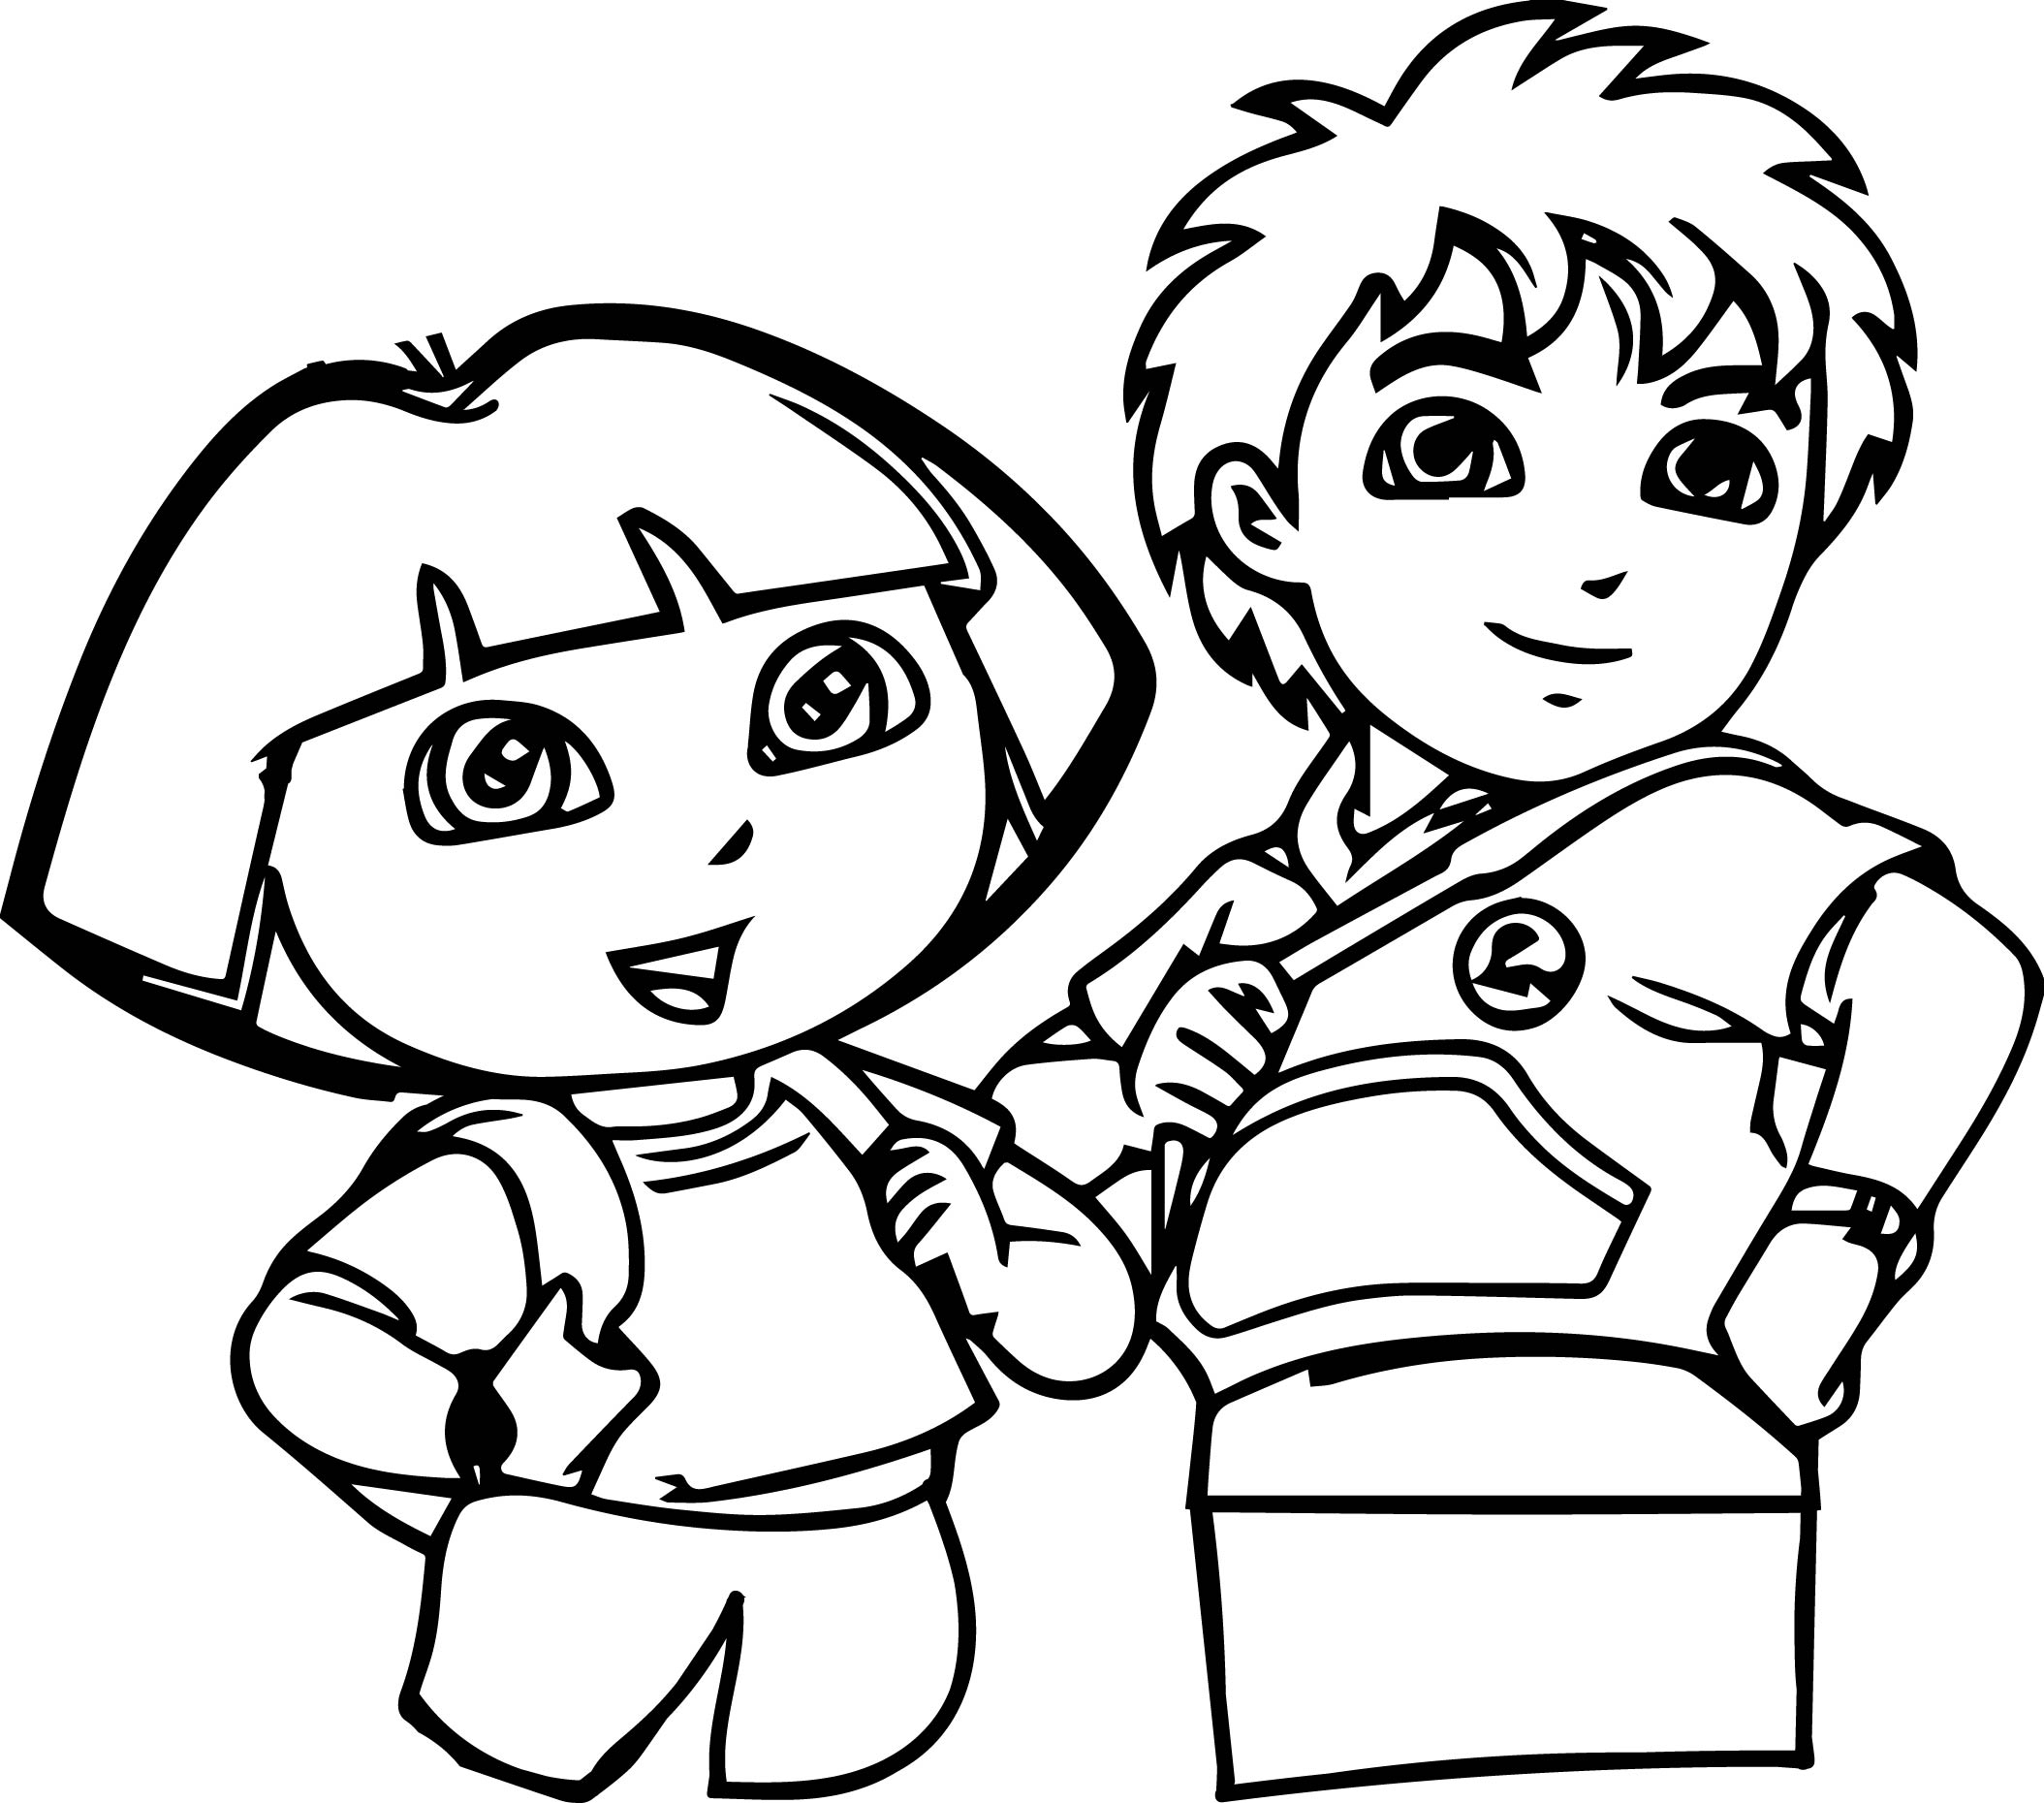 coloring pages dora and friends dora and friends coloring pages coloring home and friends pages coloring dora